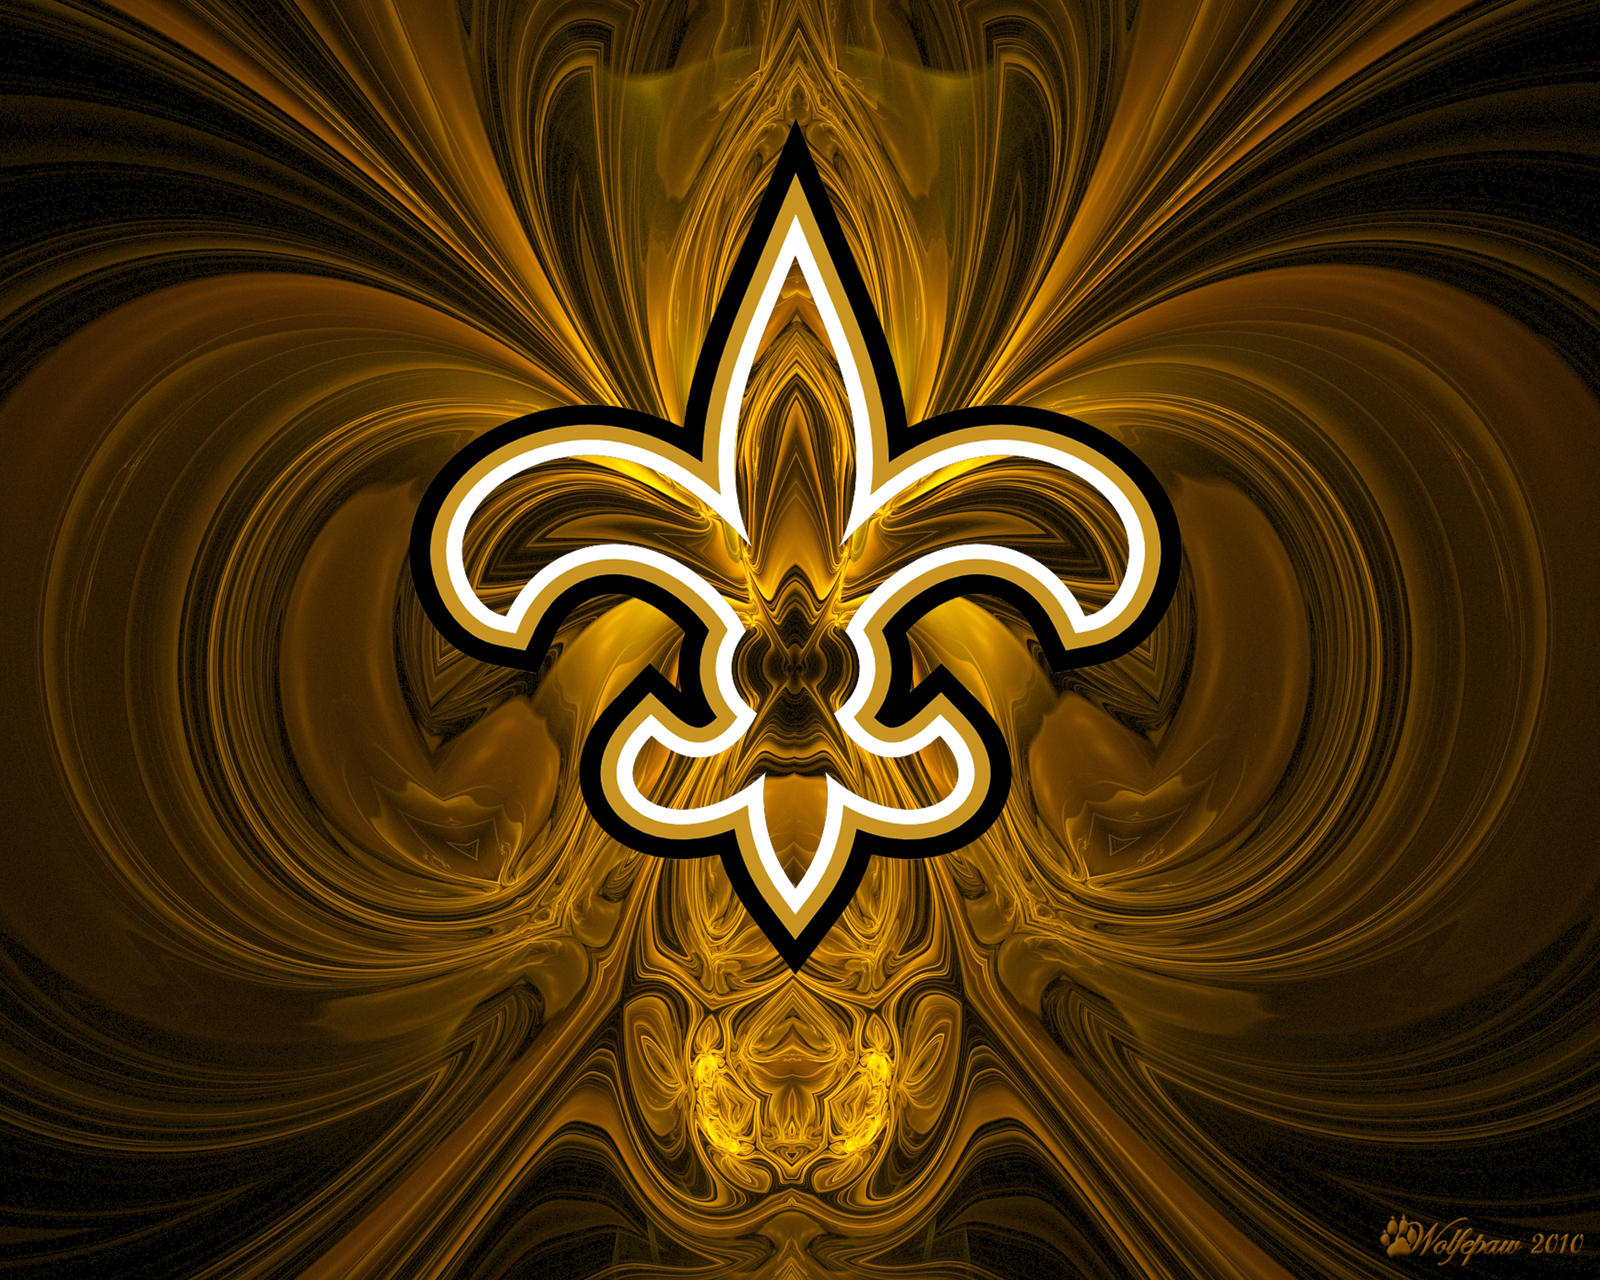 ... digital art fractal art only one more game to win and the saints